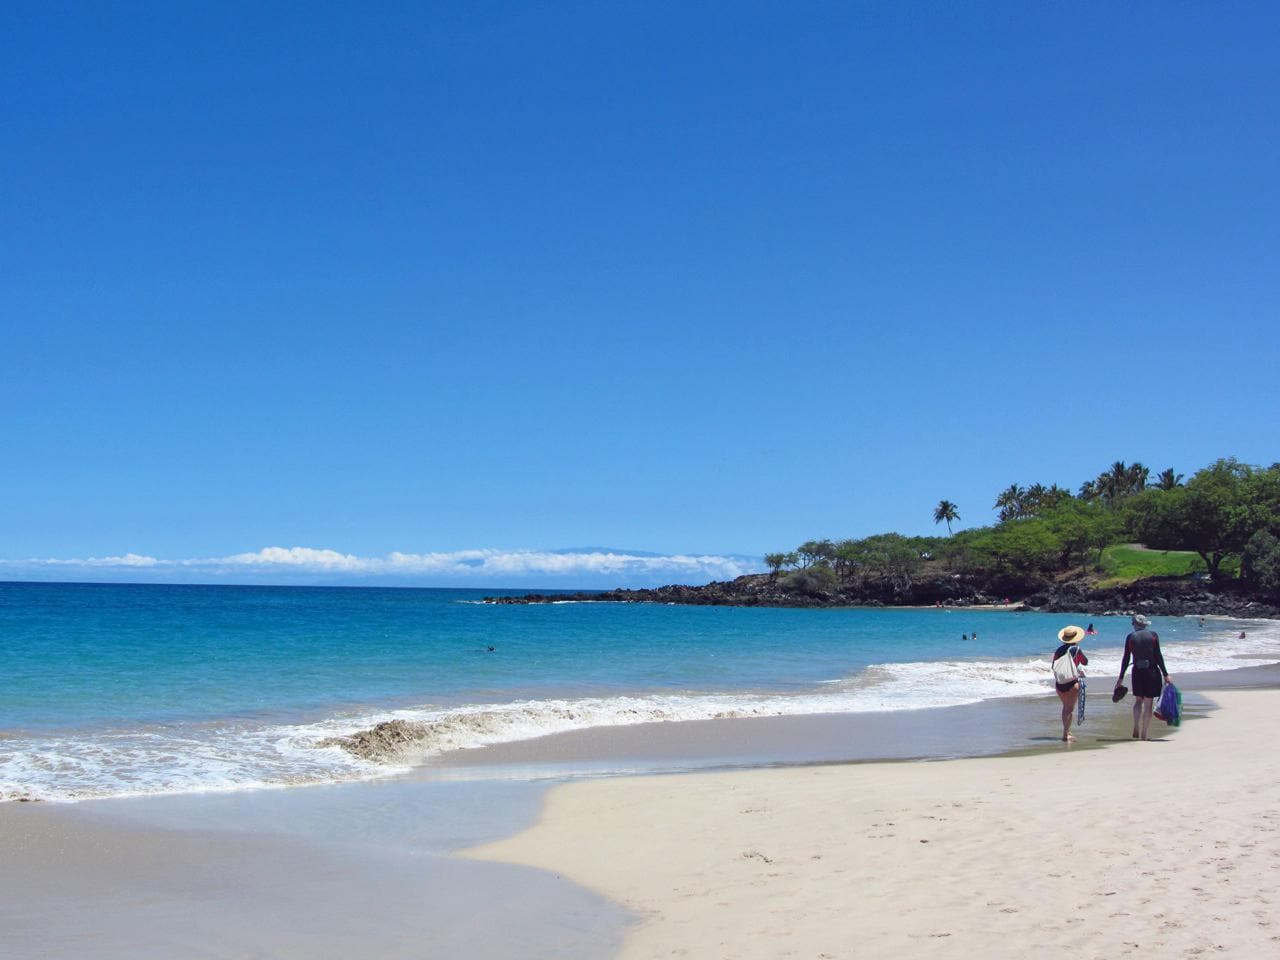 Nearby Hapuna Beach